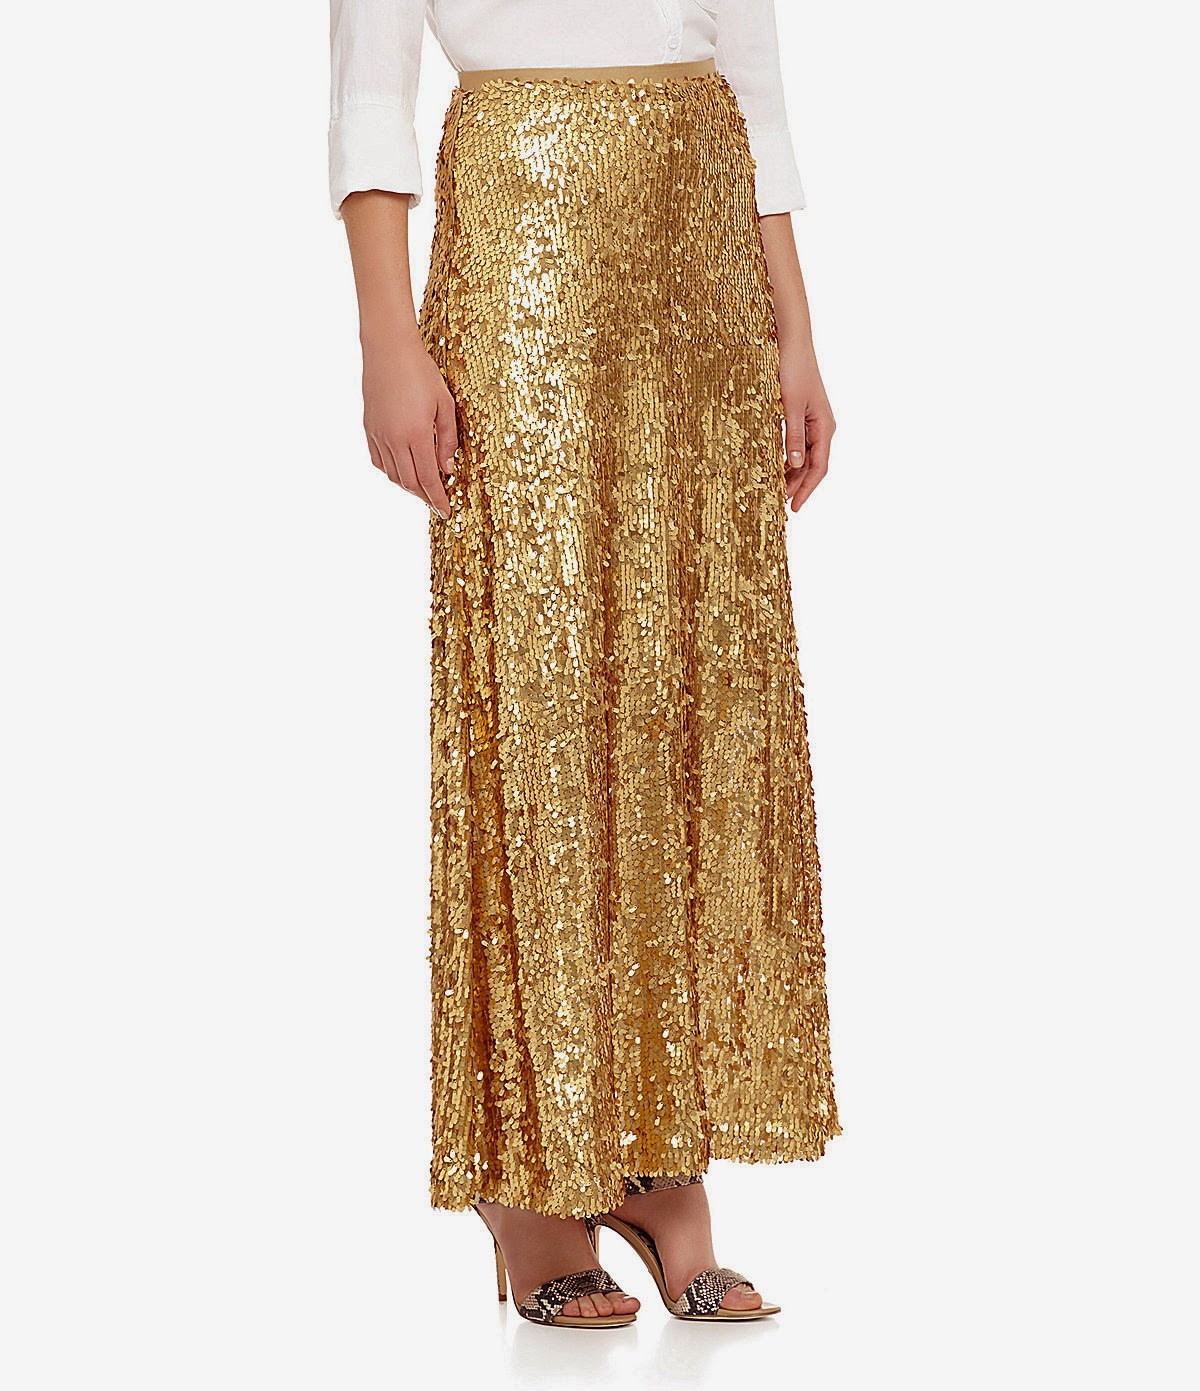 Modest sequin skirts and dresses | Mode-sty #nolayering tznius tzniut muslim islamic pentecostal mormon lds evangelical christian apostolic mission clothes Jerusalem trip hijab fashion modest